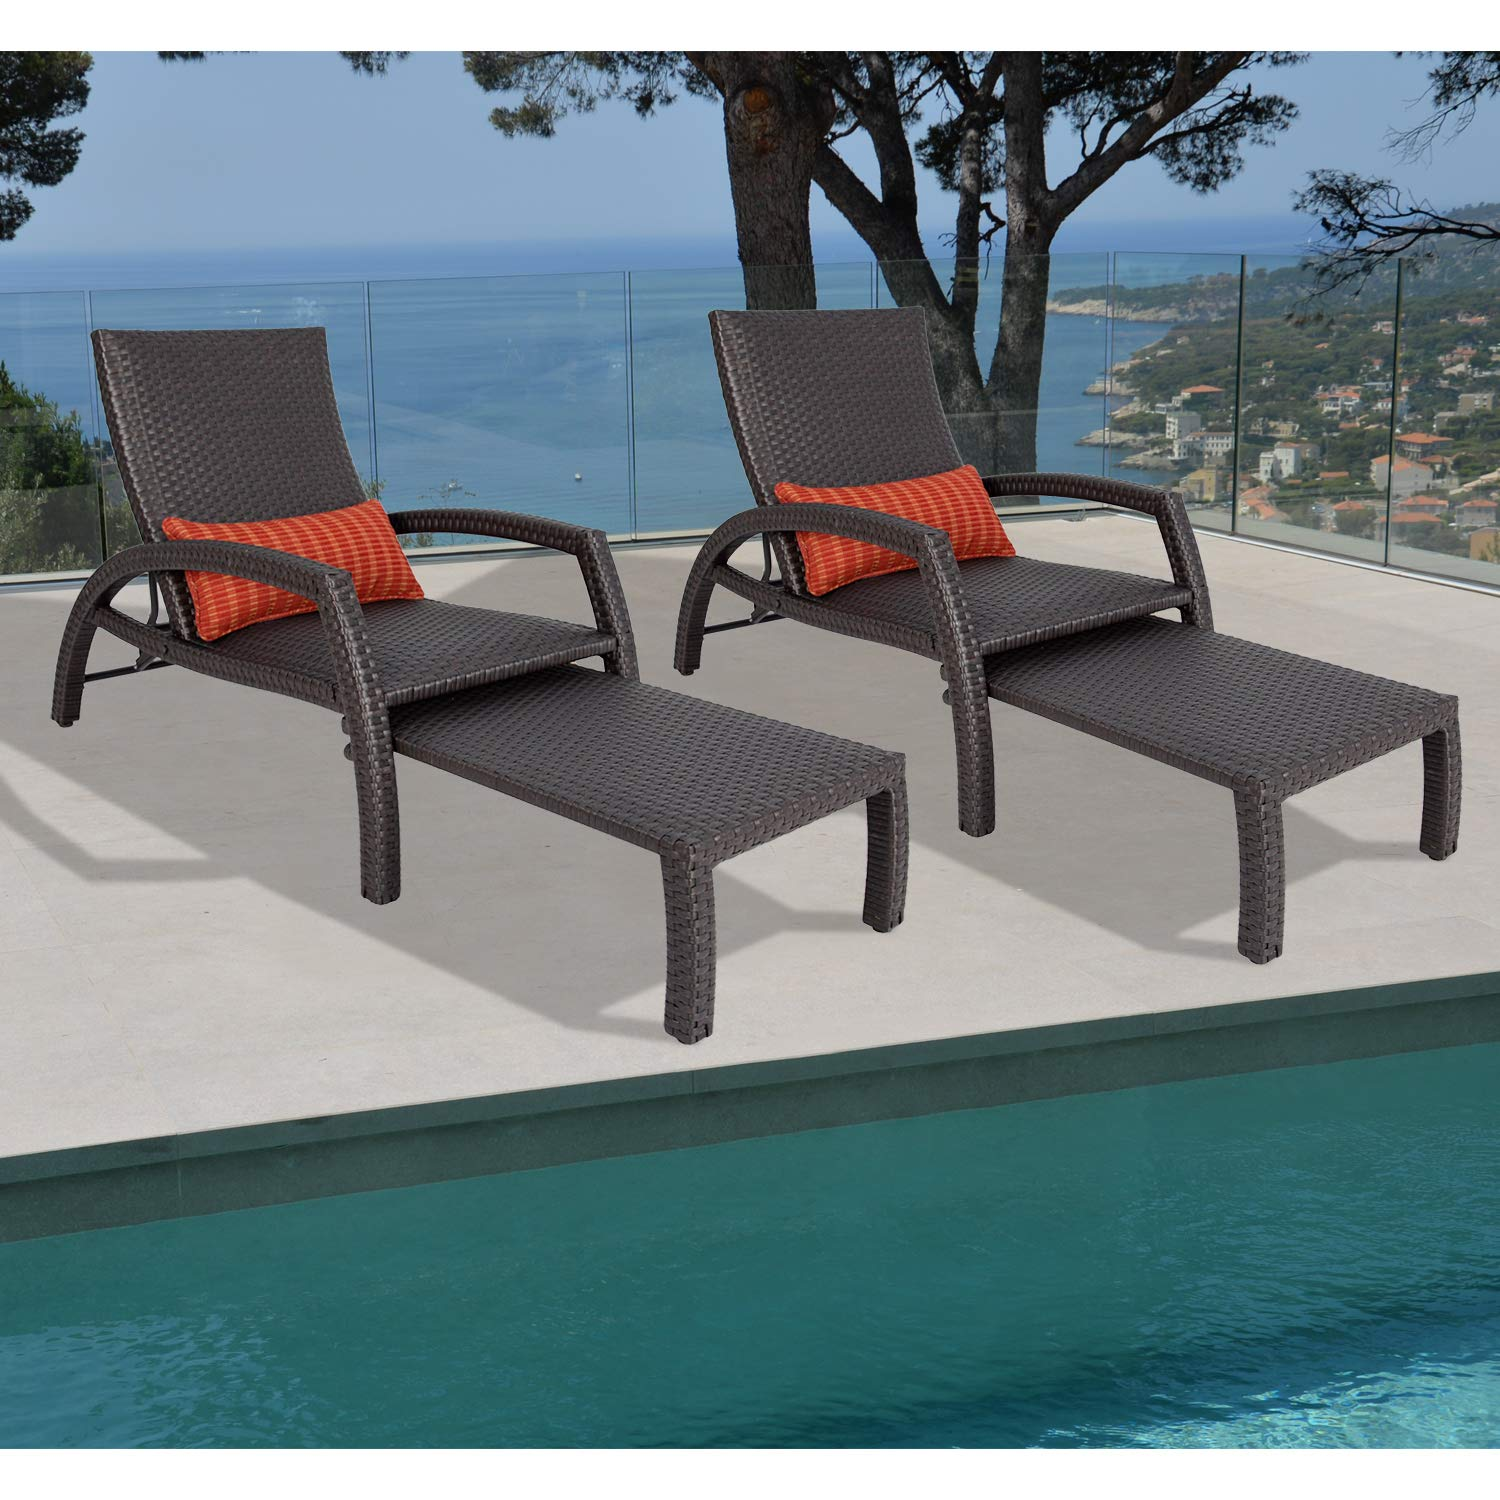 Ulax Furniture Outdoor Wicker Convertible Chaise Lounge Patio Woven Padded 2-Pack Aluminum Lounger Adjustable Chair with Quick Dry Foam and Sunbrella Pillow